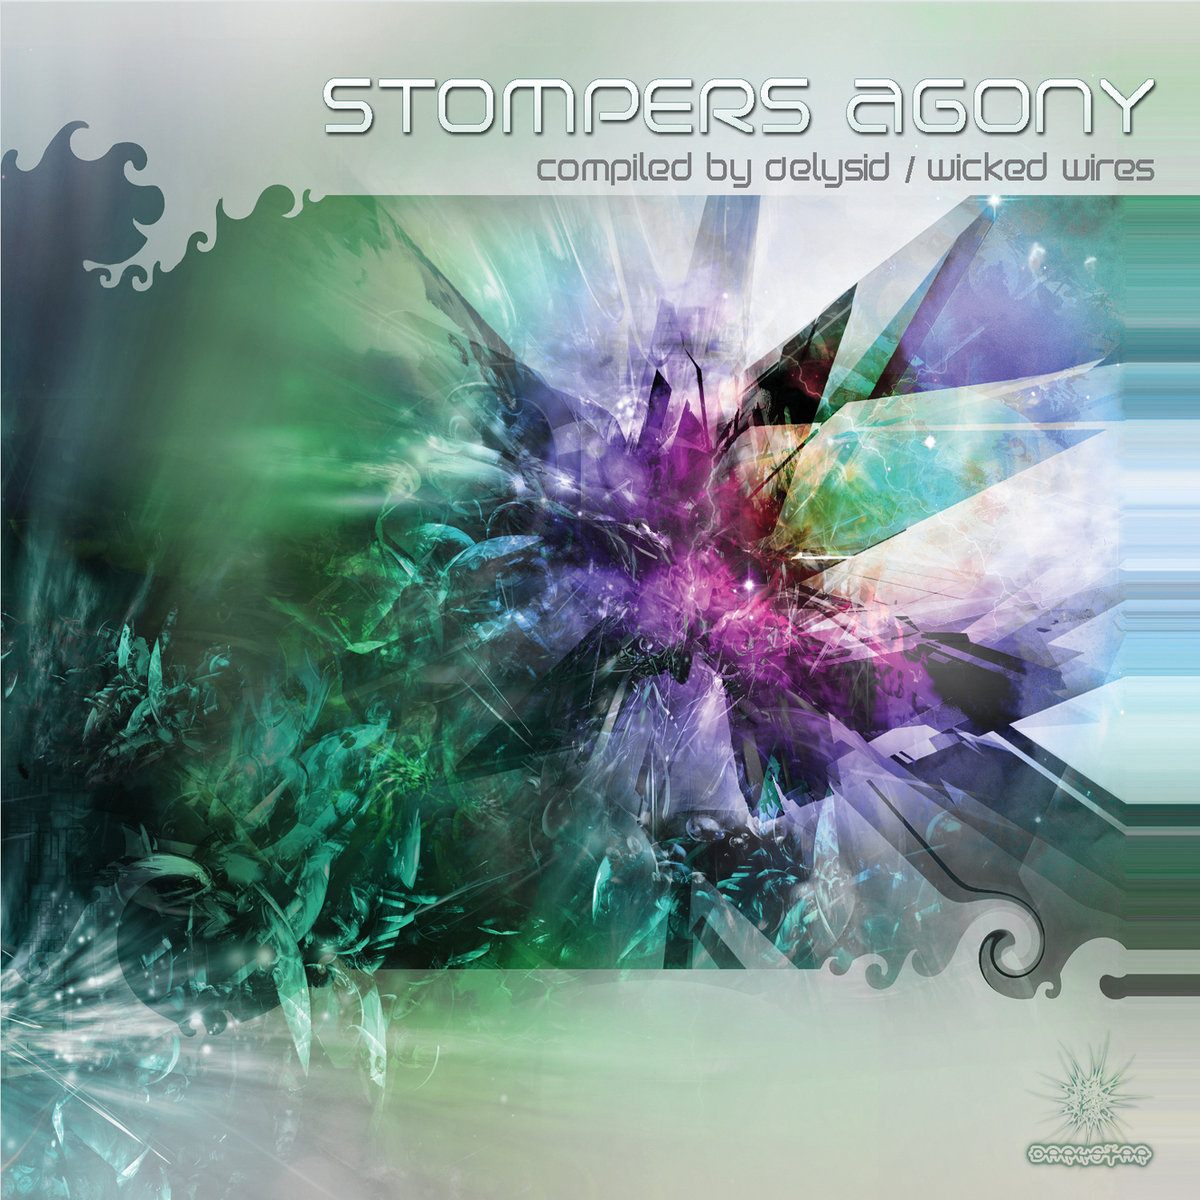 Sick Addiction - Today's Madness @ 'Various Artists - Stompers Agony (Compiled by Delysid / Wicked Wires)' album (electronic, goa)